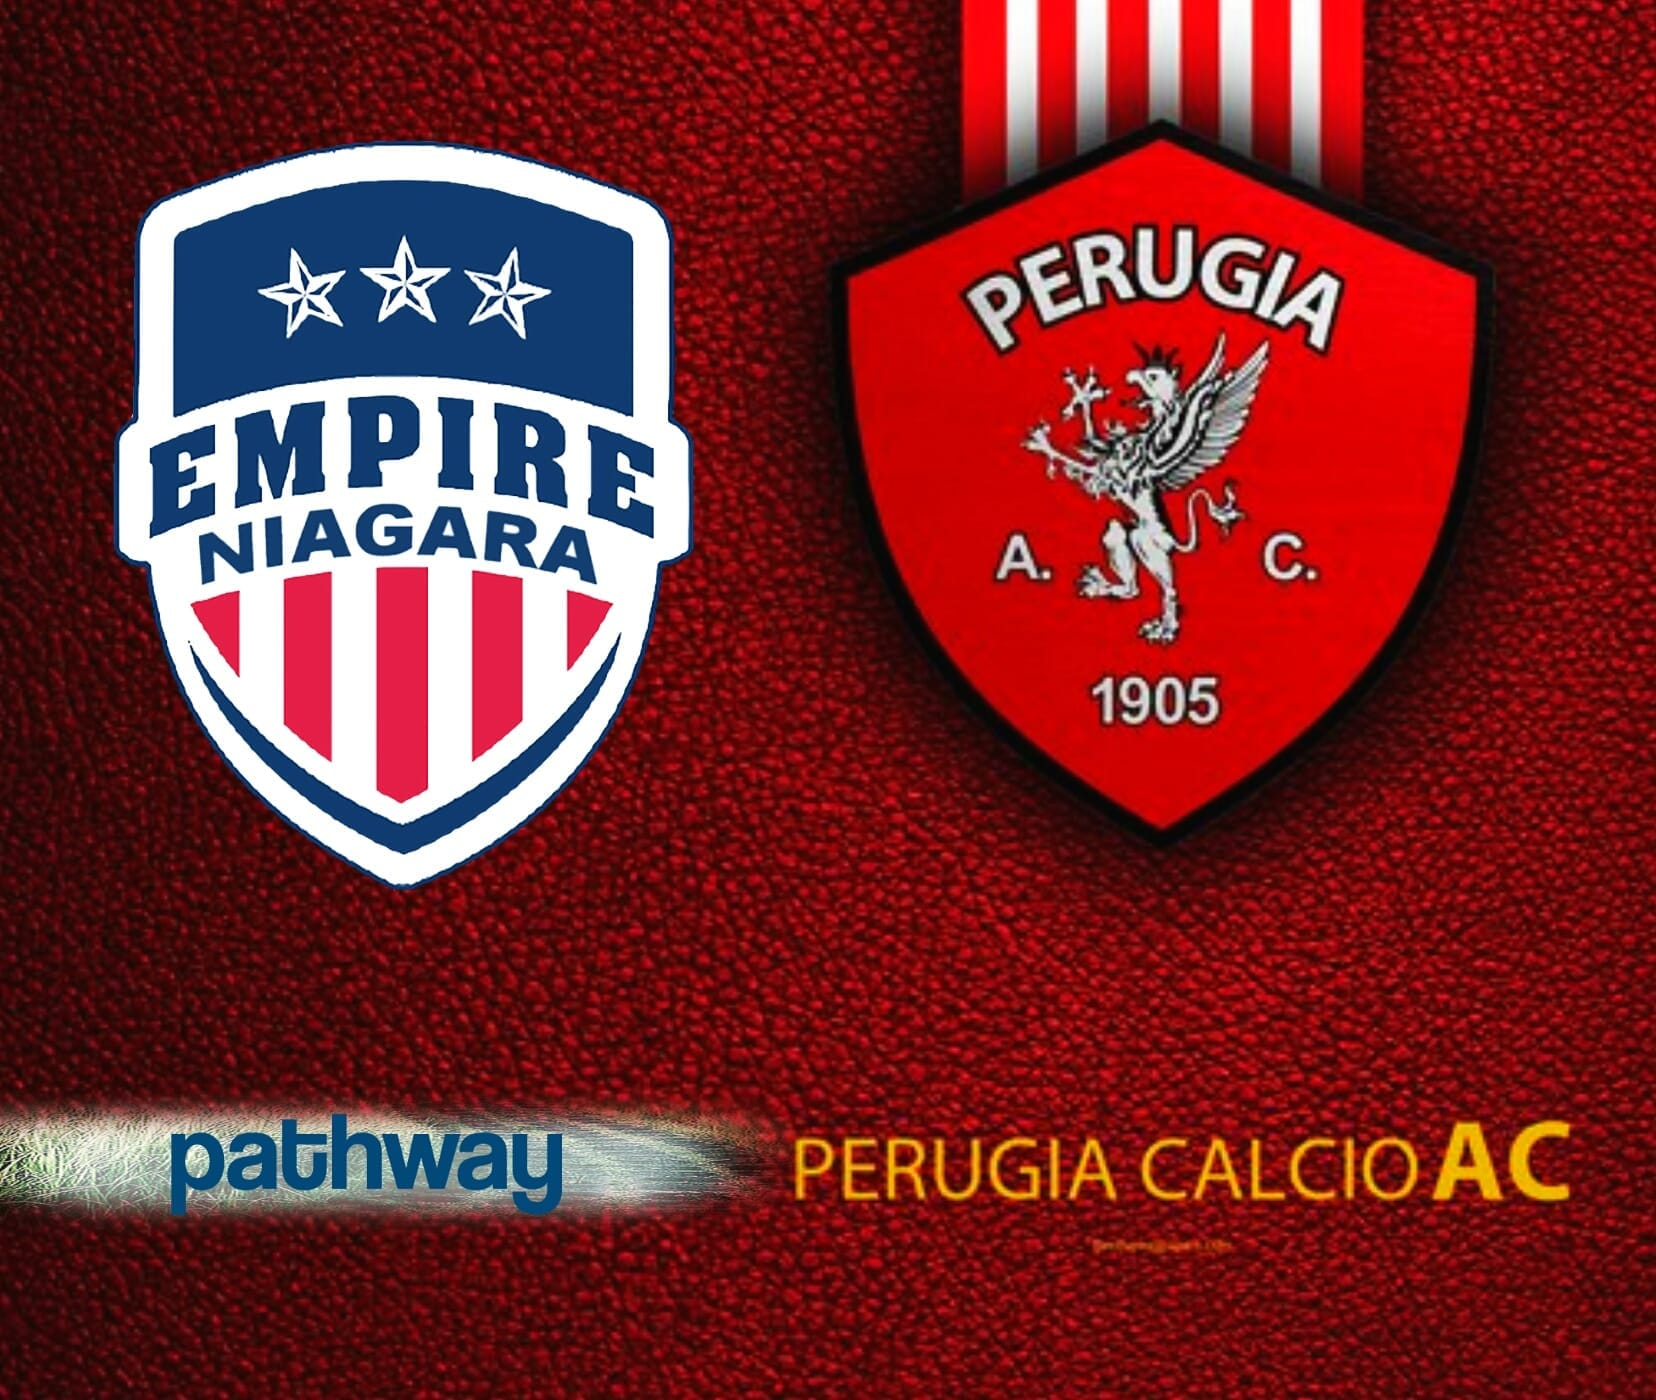 Empire's pathway to Europe - AC Perugia